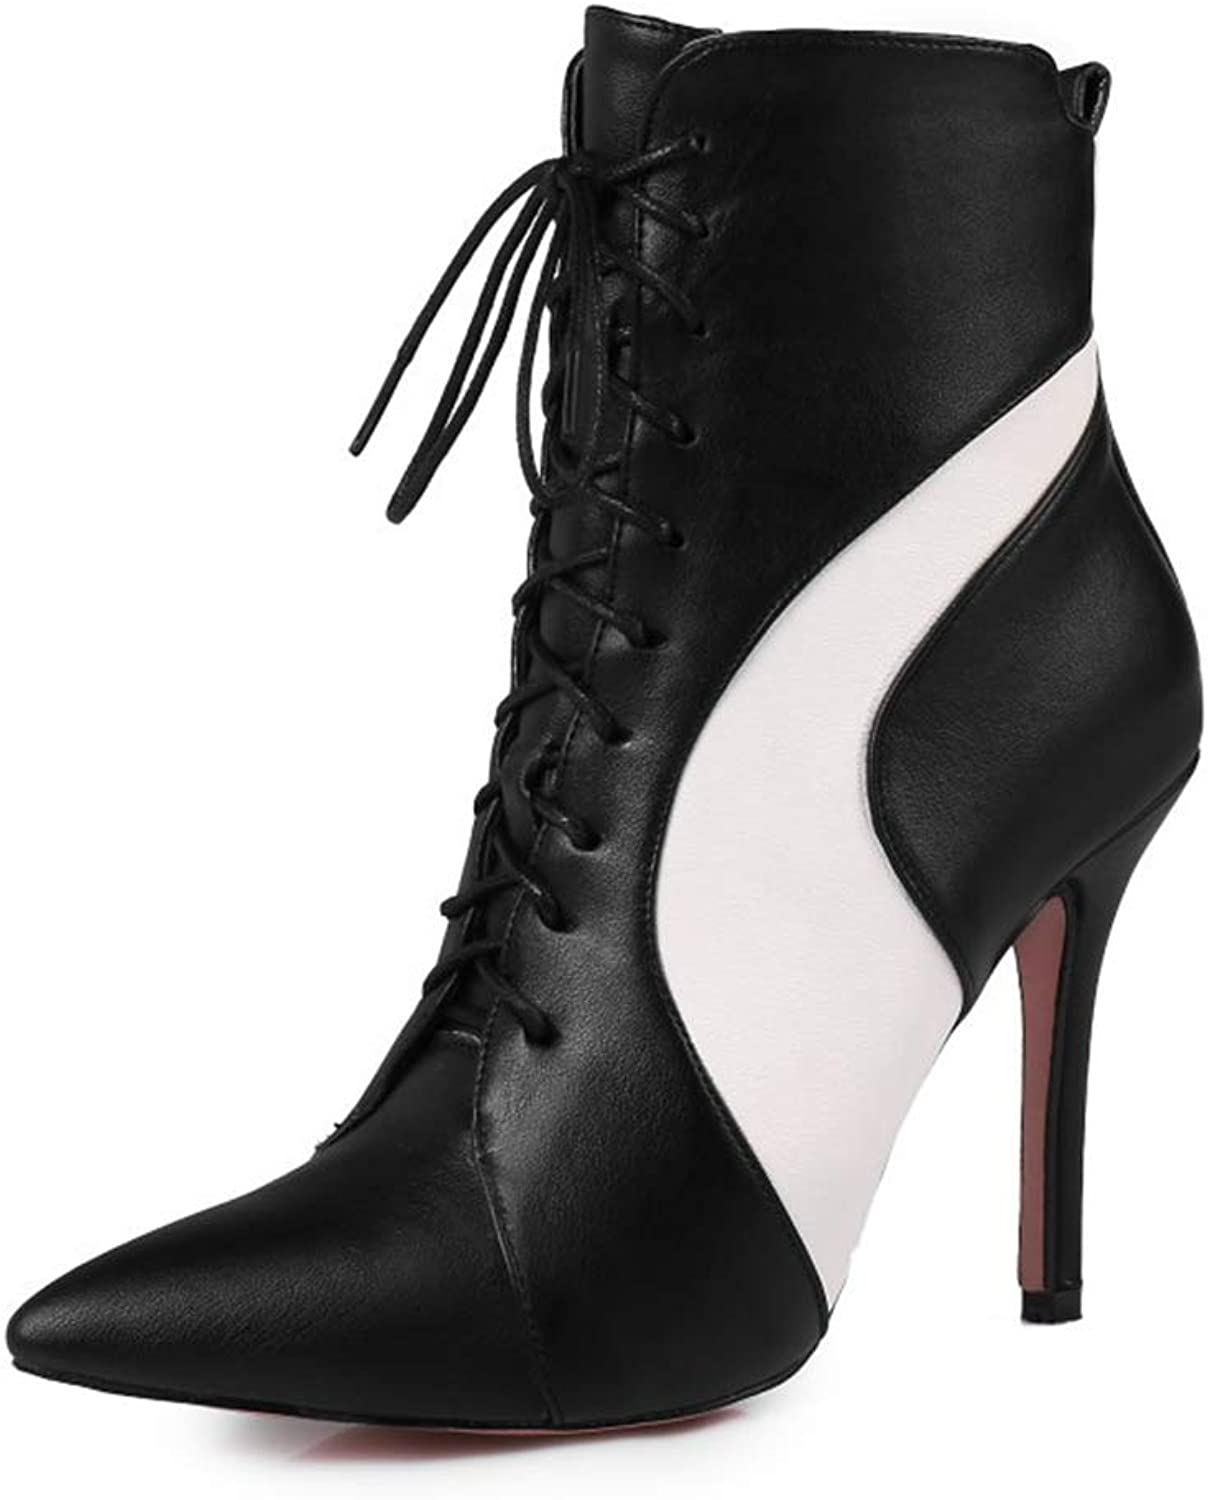 CYBLING Womens Pointed Toe Lace Up High Stiletto Heel Ankle Boots Side Zipper Fashion Booties